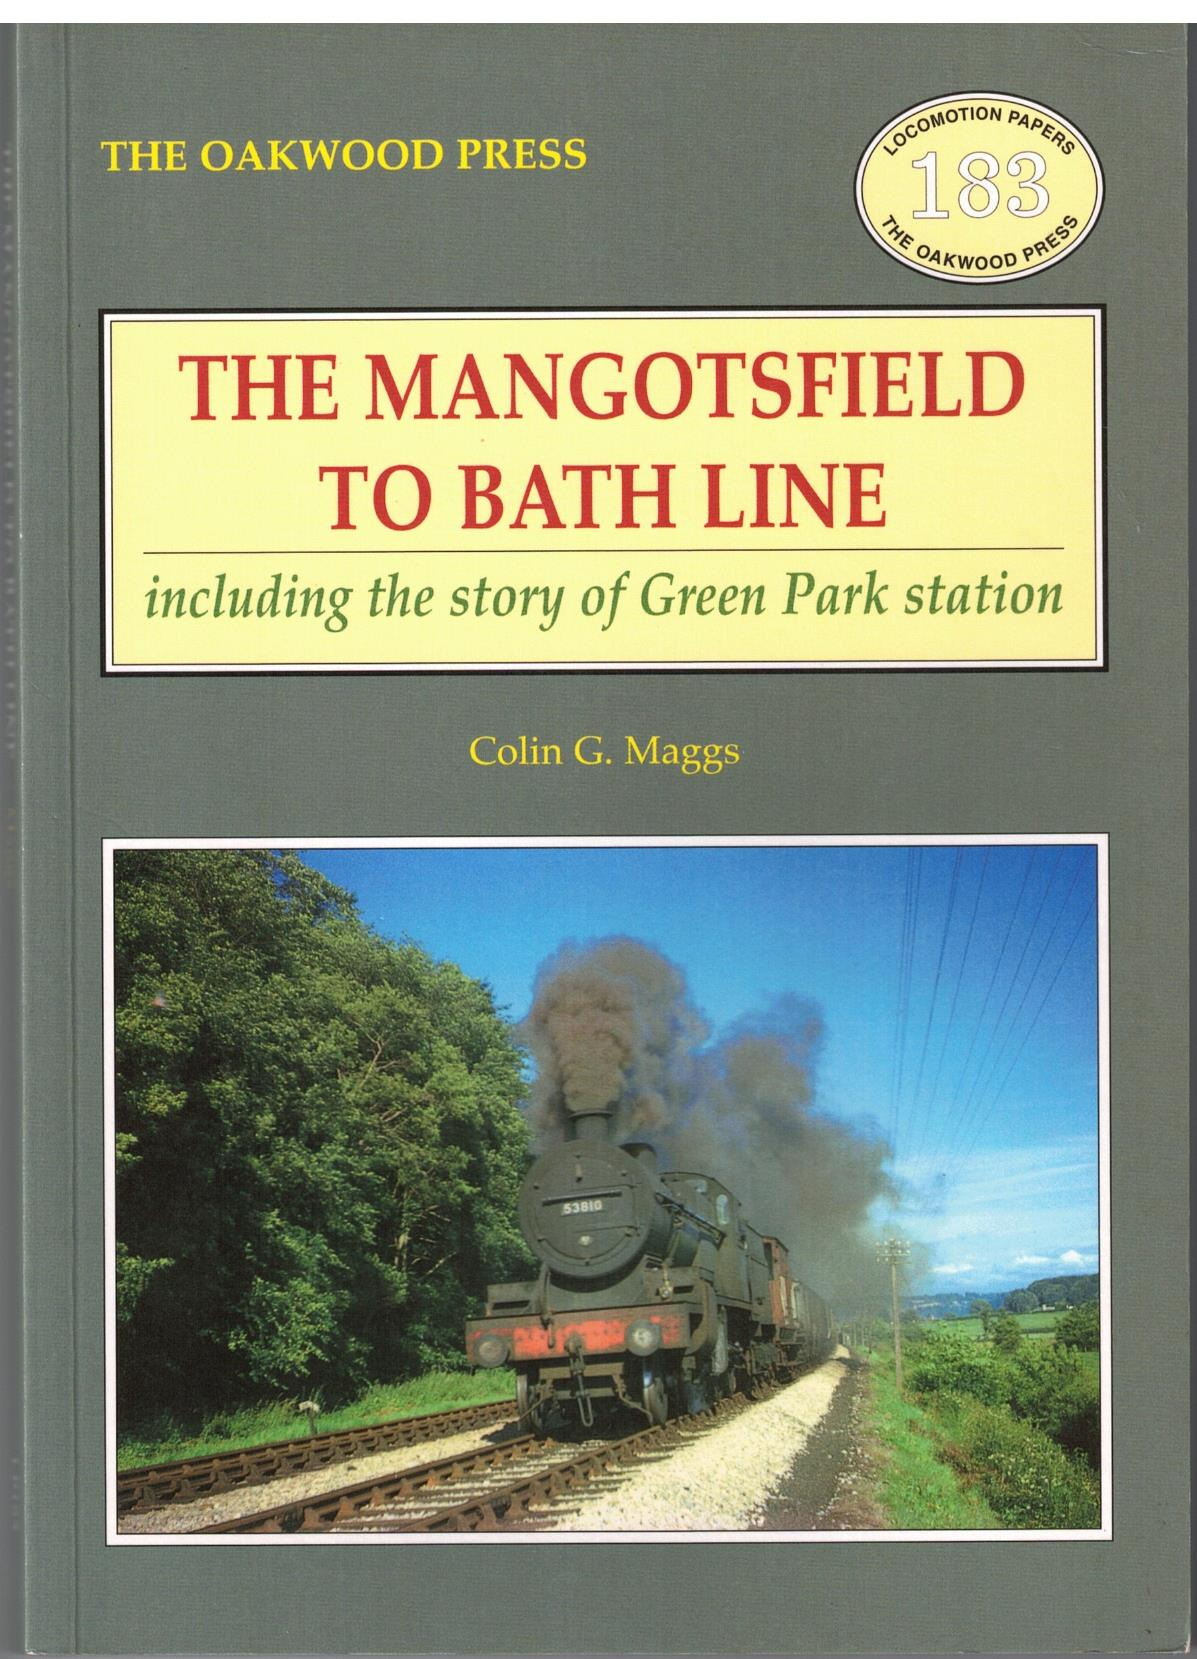 Image for The Mangotsfield to Bath Line, including the story of Green Park station